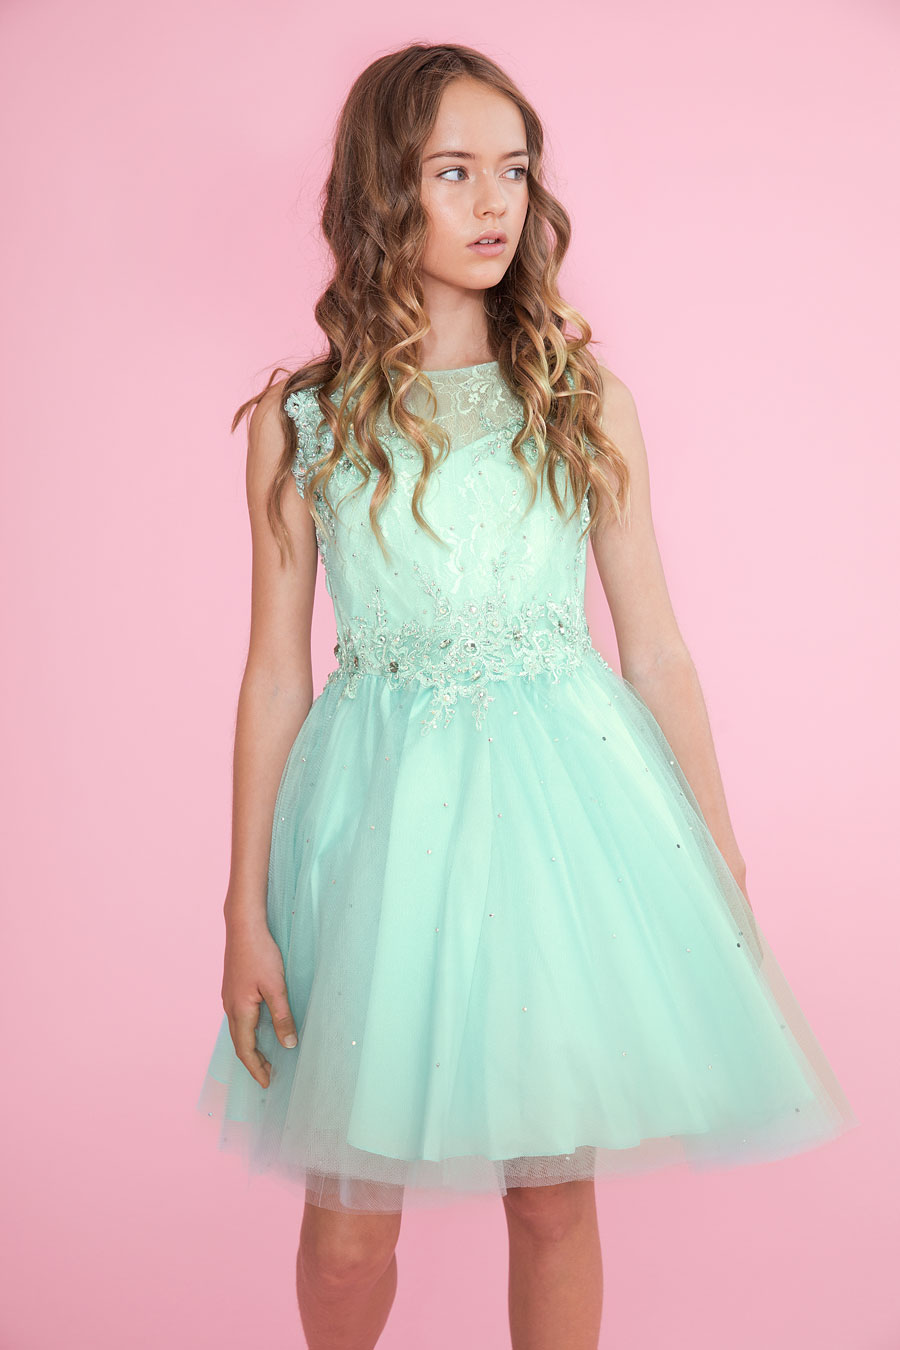 Girls Pageant Dress Tulle with Lace Accents – FirstCommunions.com